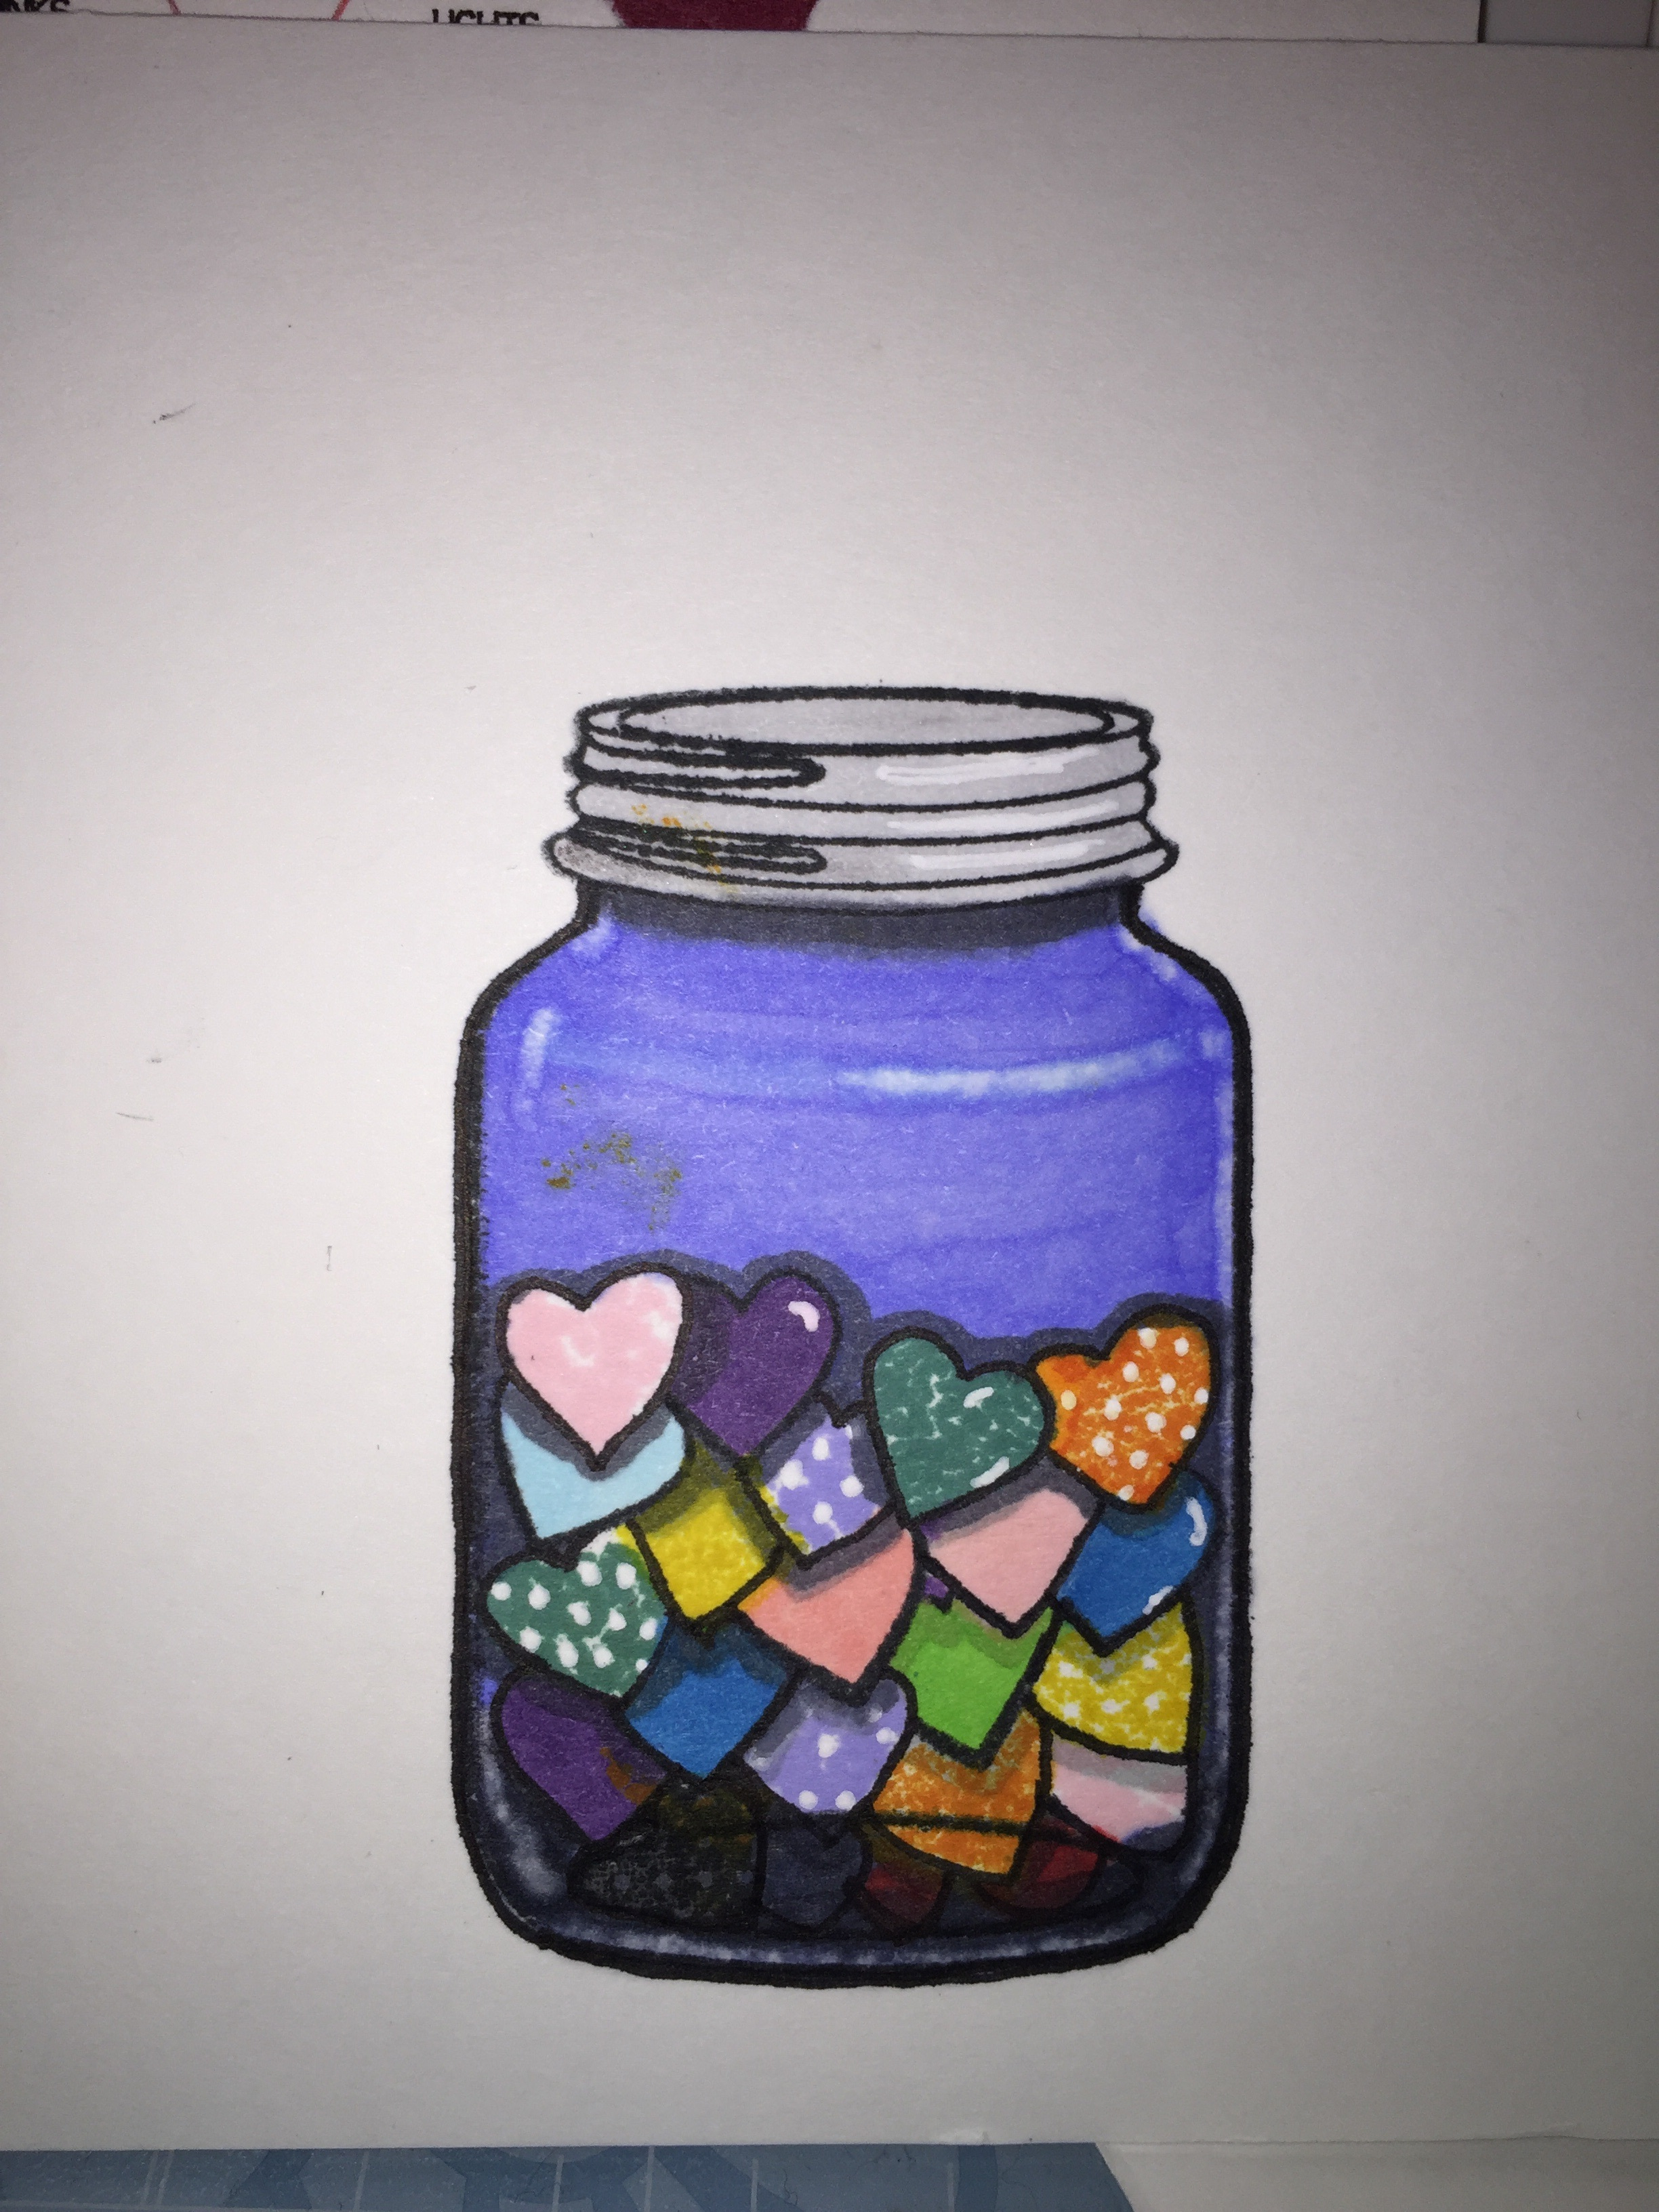 The finished jar!